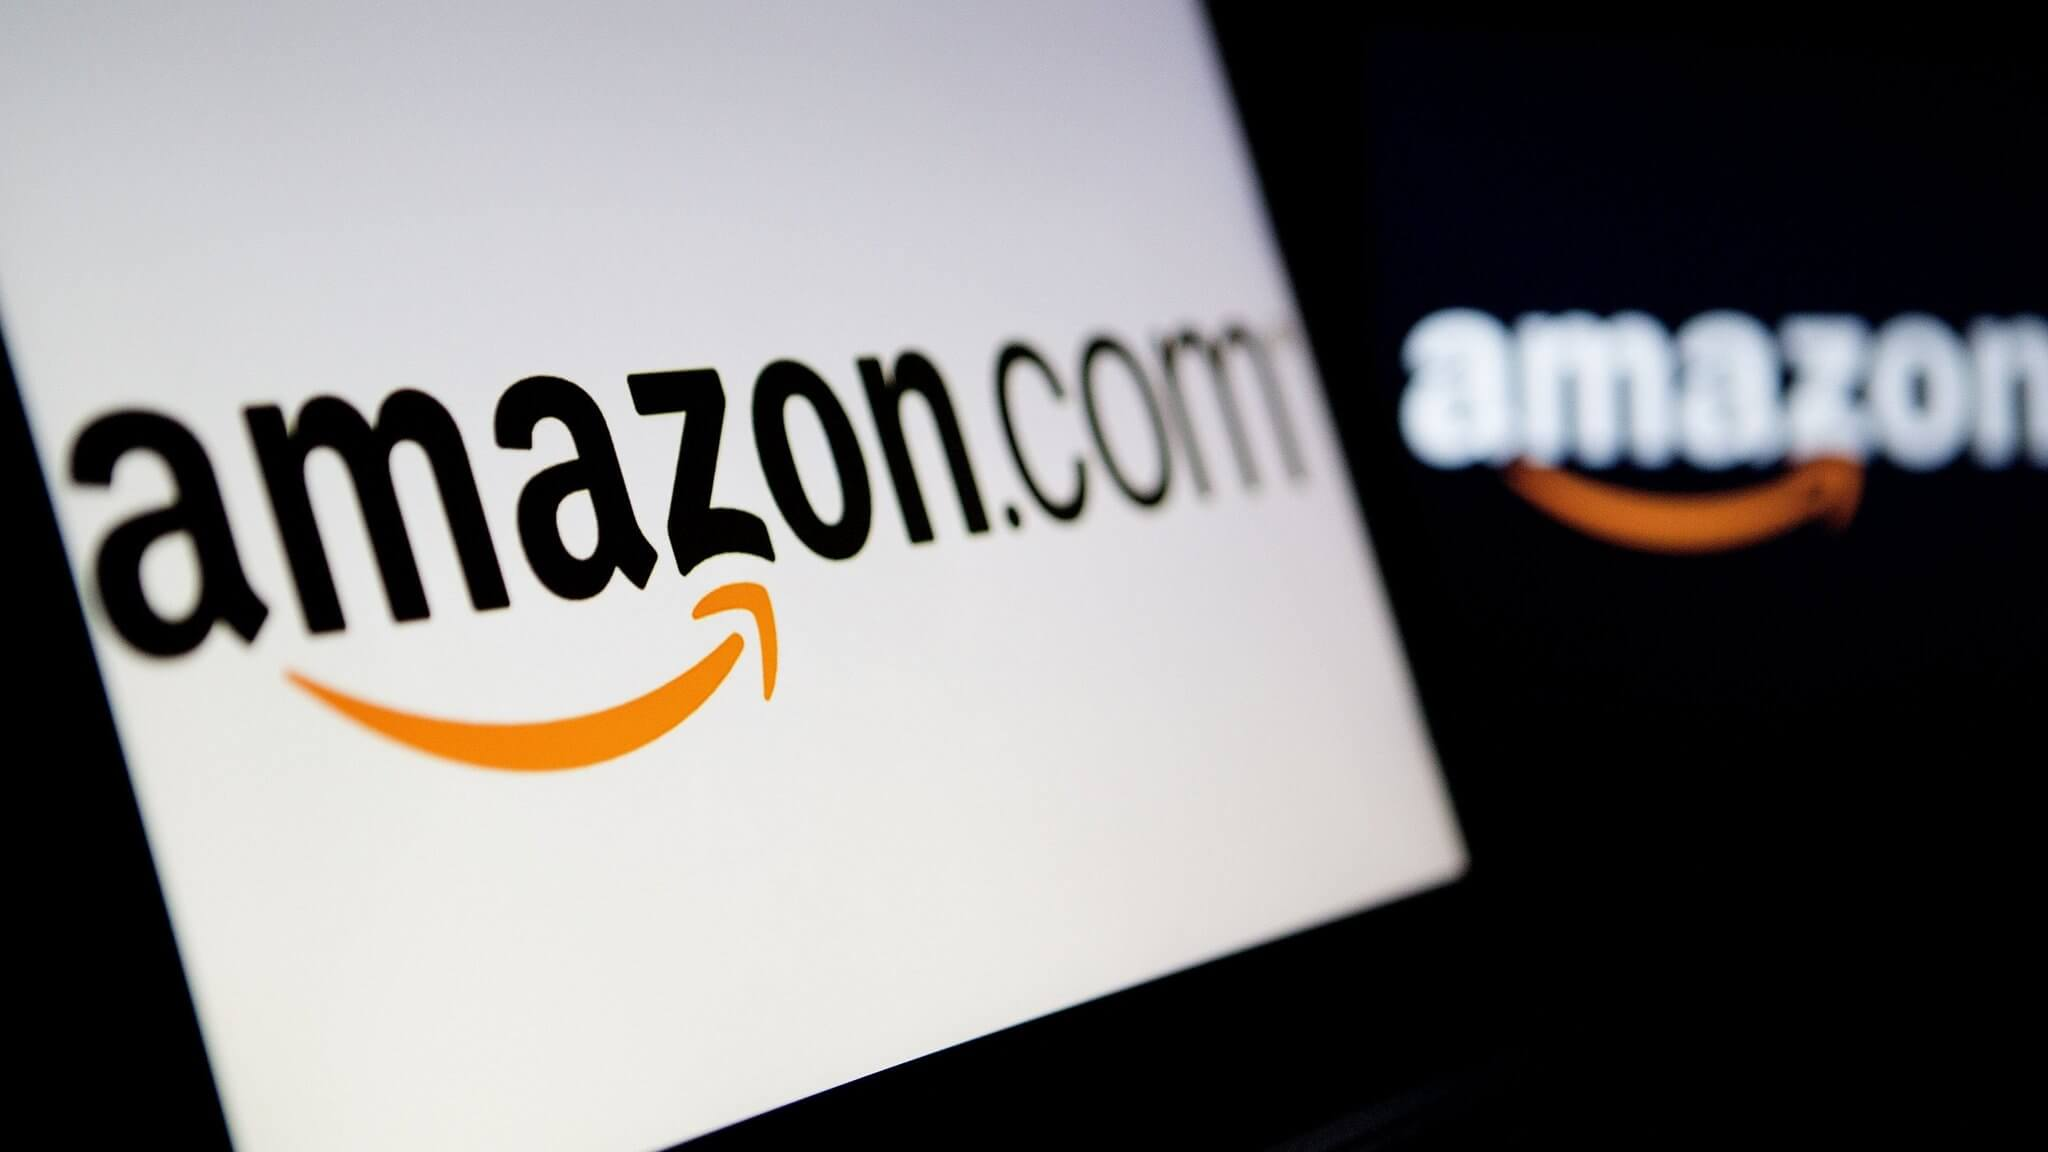 Amazon Invites Sellers to Private Meeting for Promoting Premium Support Service